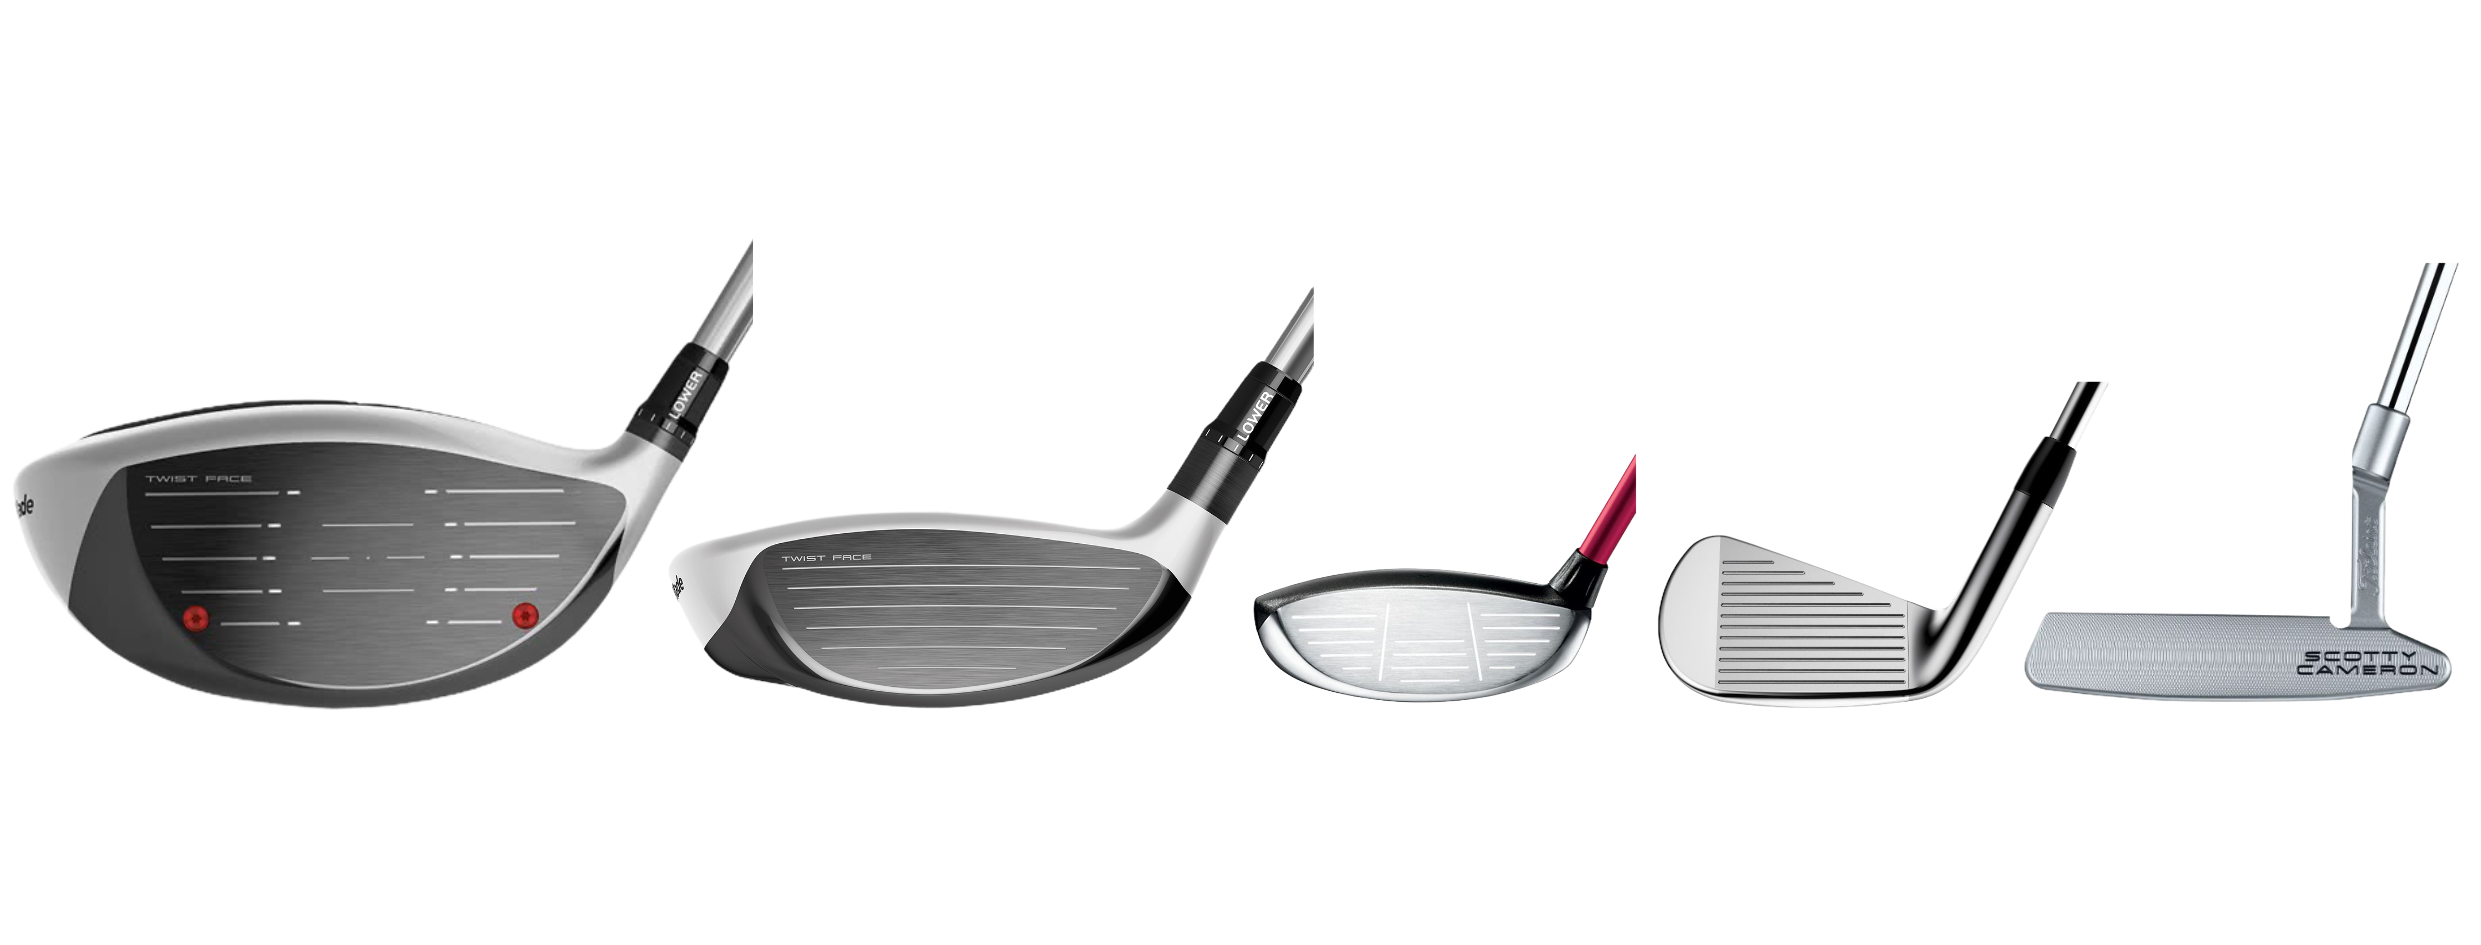 Club face condition rating on pre-owned clubs